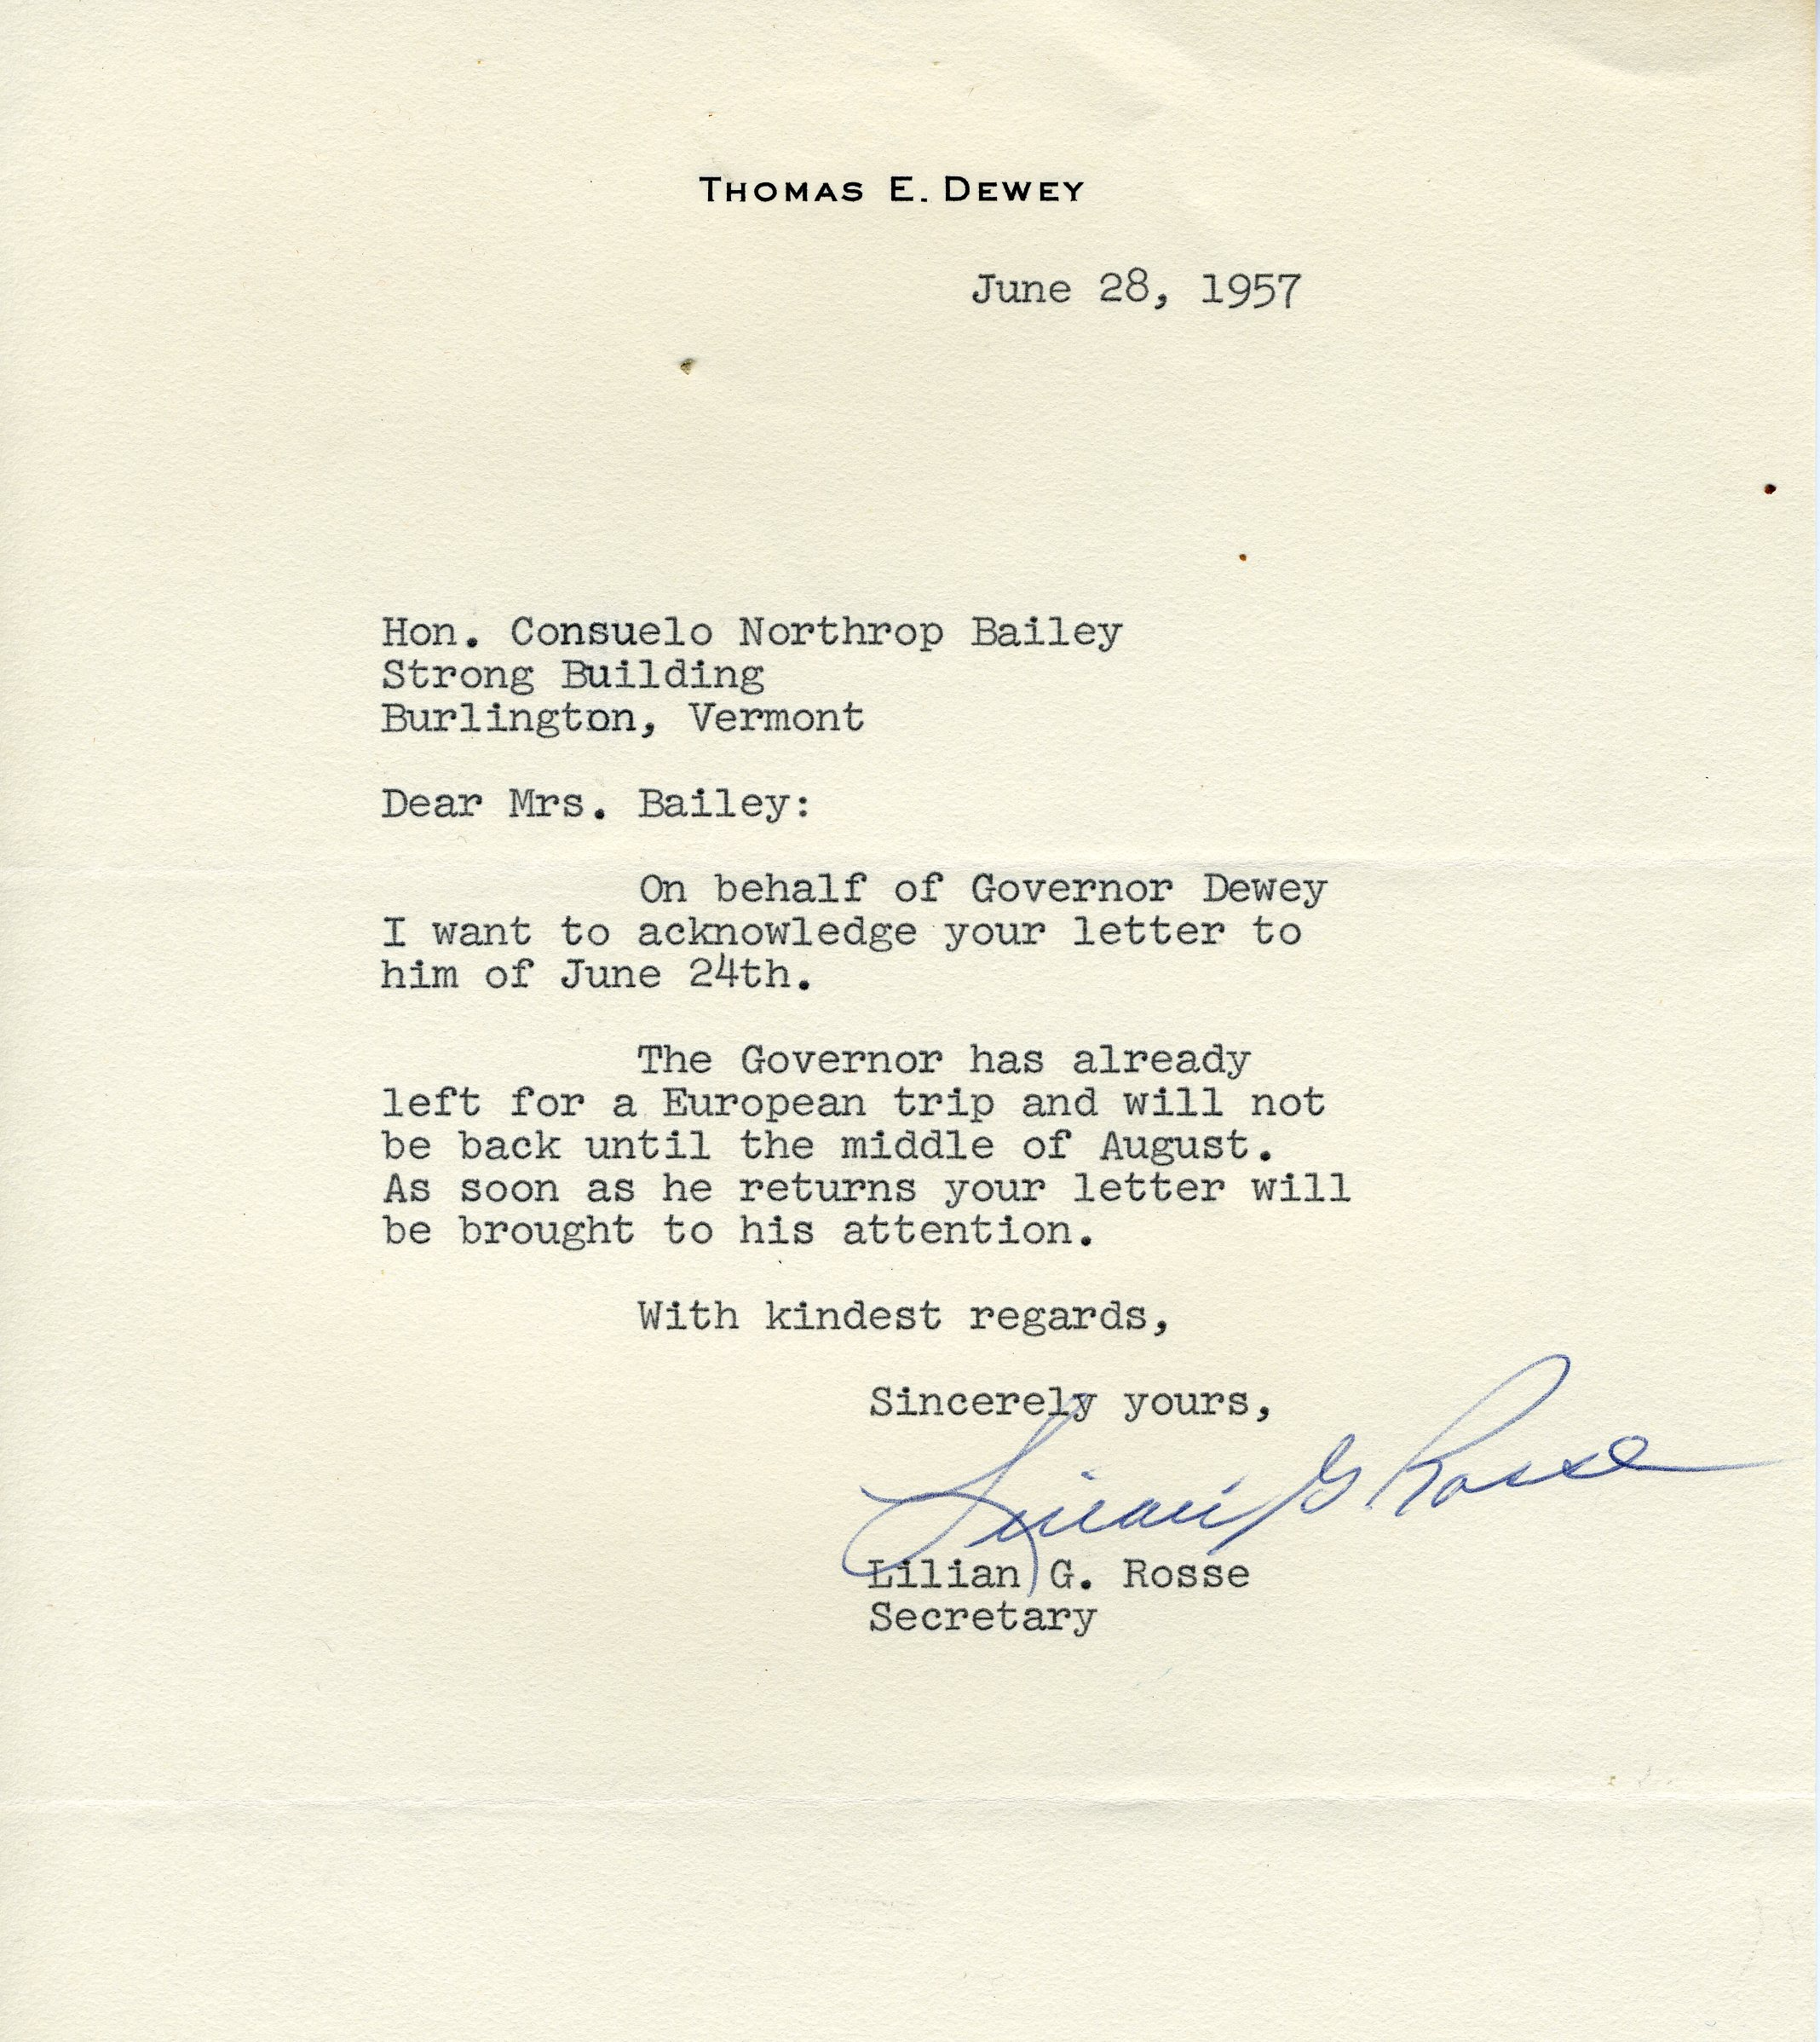 Letter from Lilian G. Rose to Consuelo Northrop Bailey, 1957 June 28